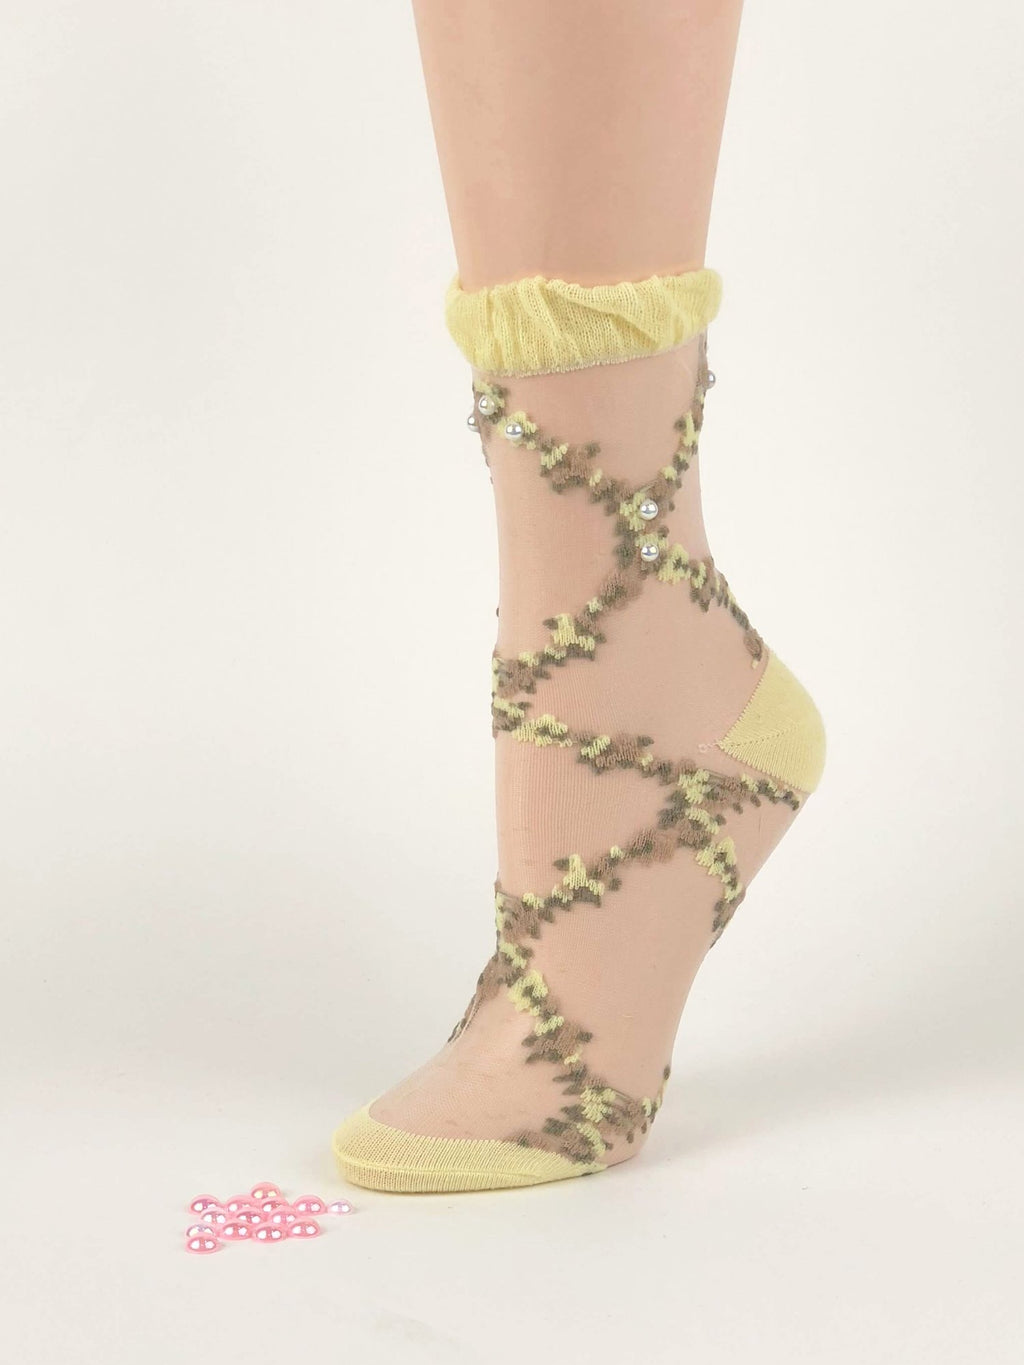 Green/Yellow One-Stripped Sheer Socks - Global Trendz Fashion®